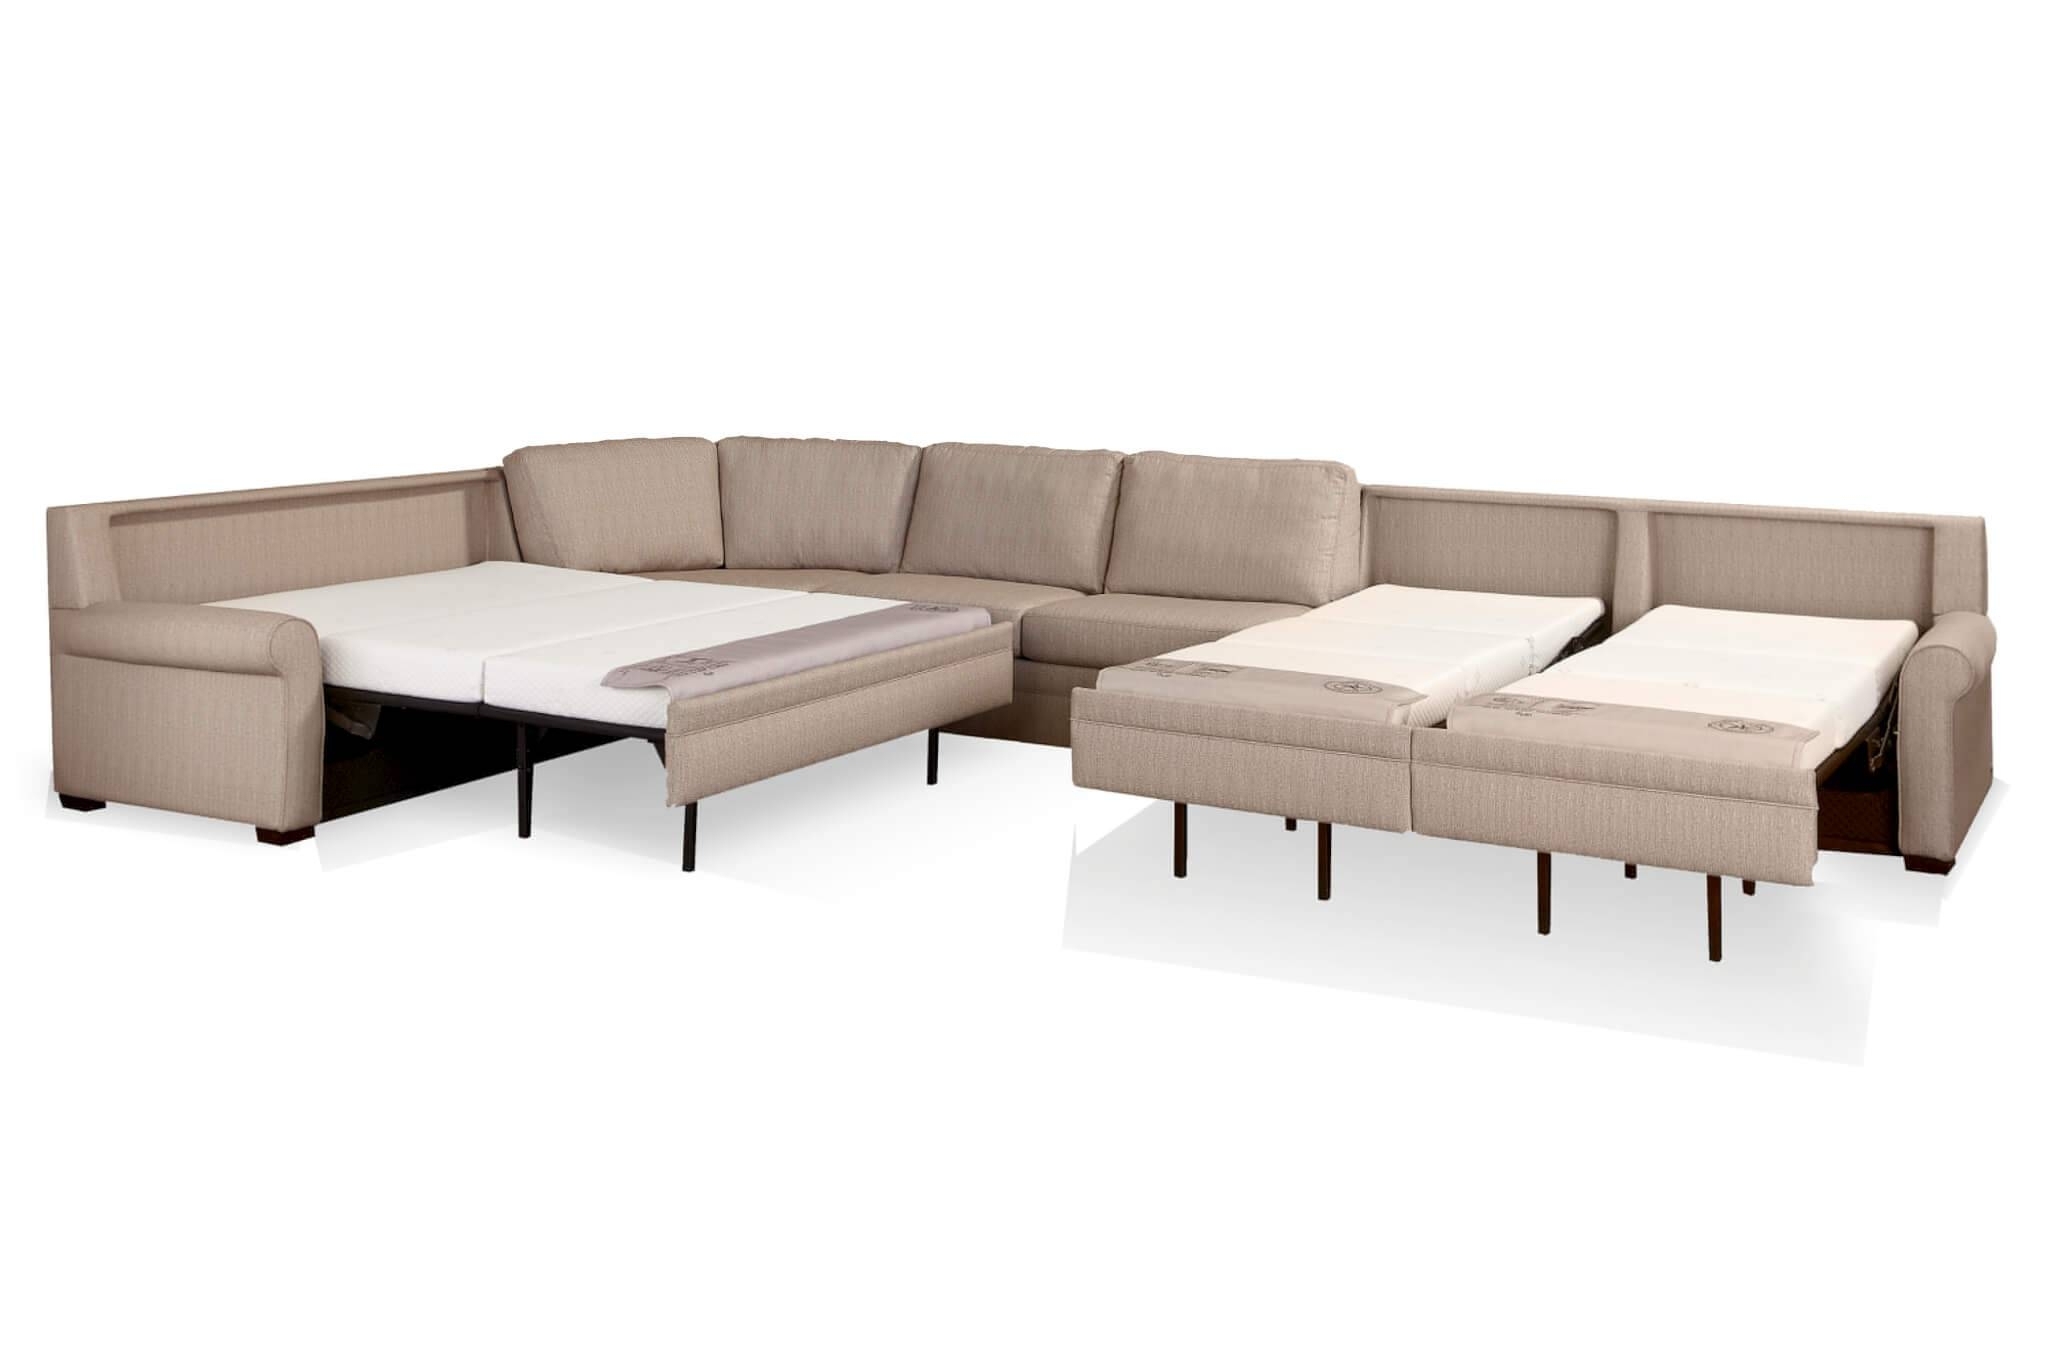 Sofas Center : American Leather Comfort Sleeper Sofa Reviewssed in Comfort Sleeper Sofas (Image 28 of 30)